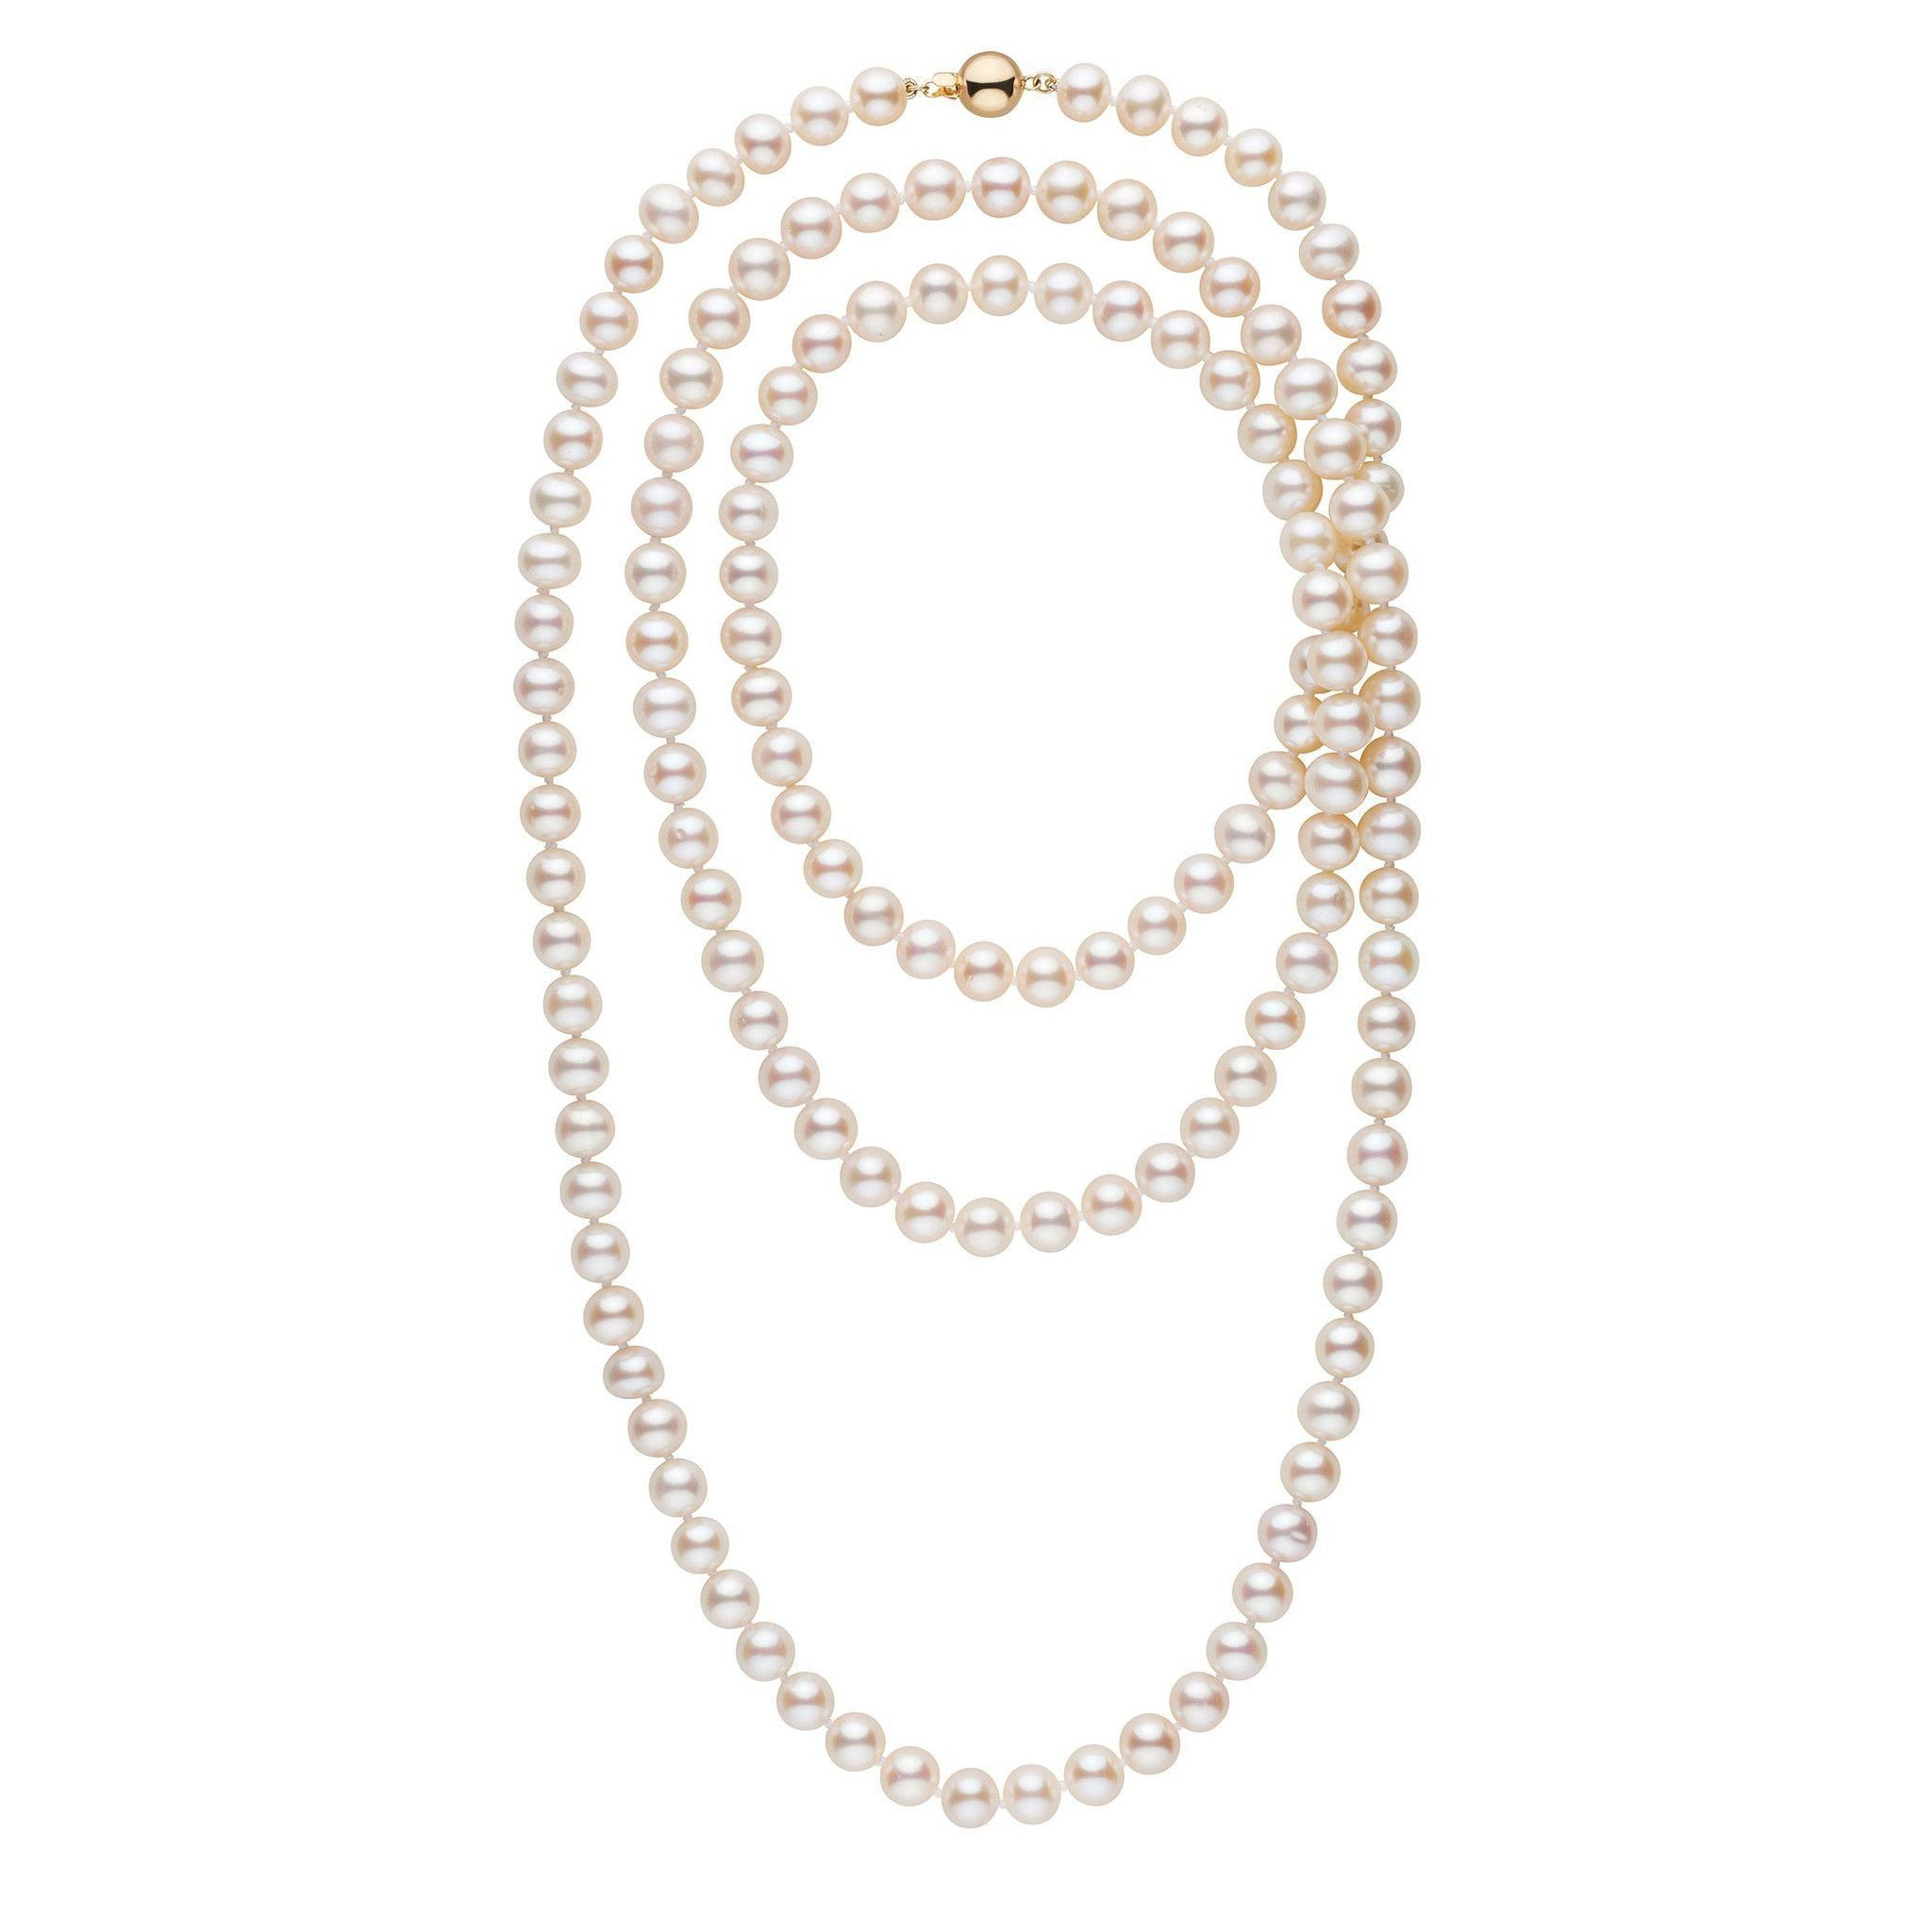 52-inch 8.5-9.5 mm AA+ White Freshwater Pearl Necklace